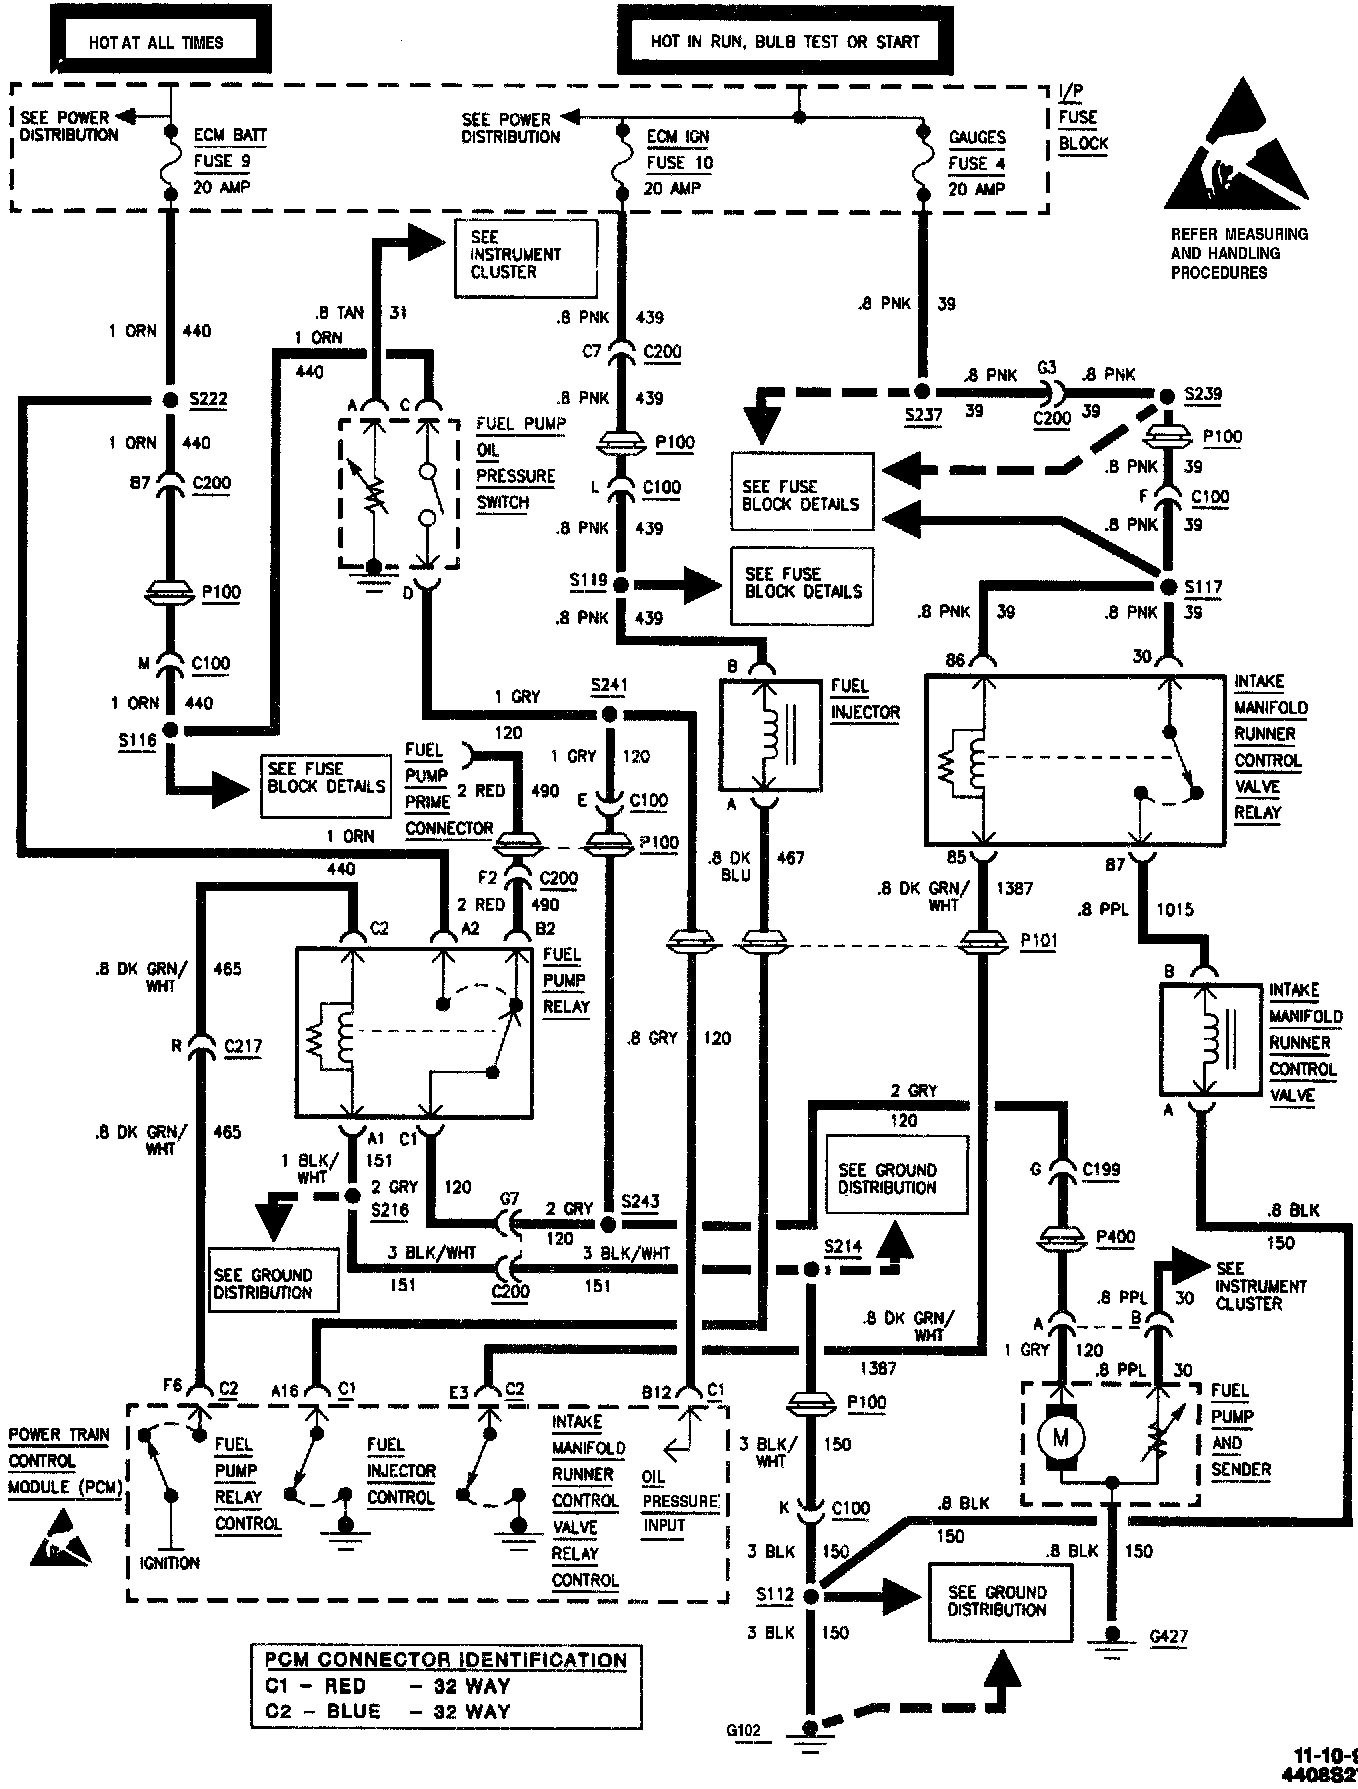 hight resolution of 99 chevy s10 wiring diagram wiring diagram origin chevy s10 tailight 1997 s10 wiring diagram wiring